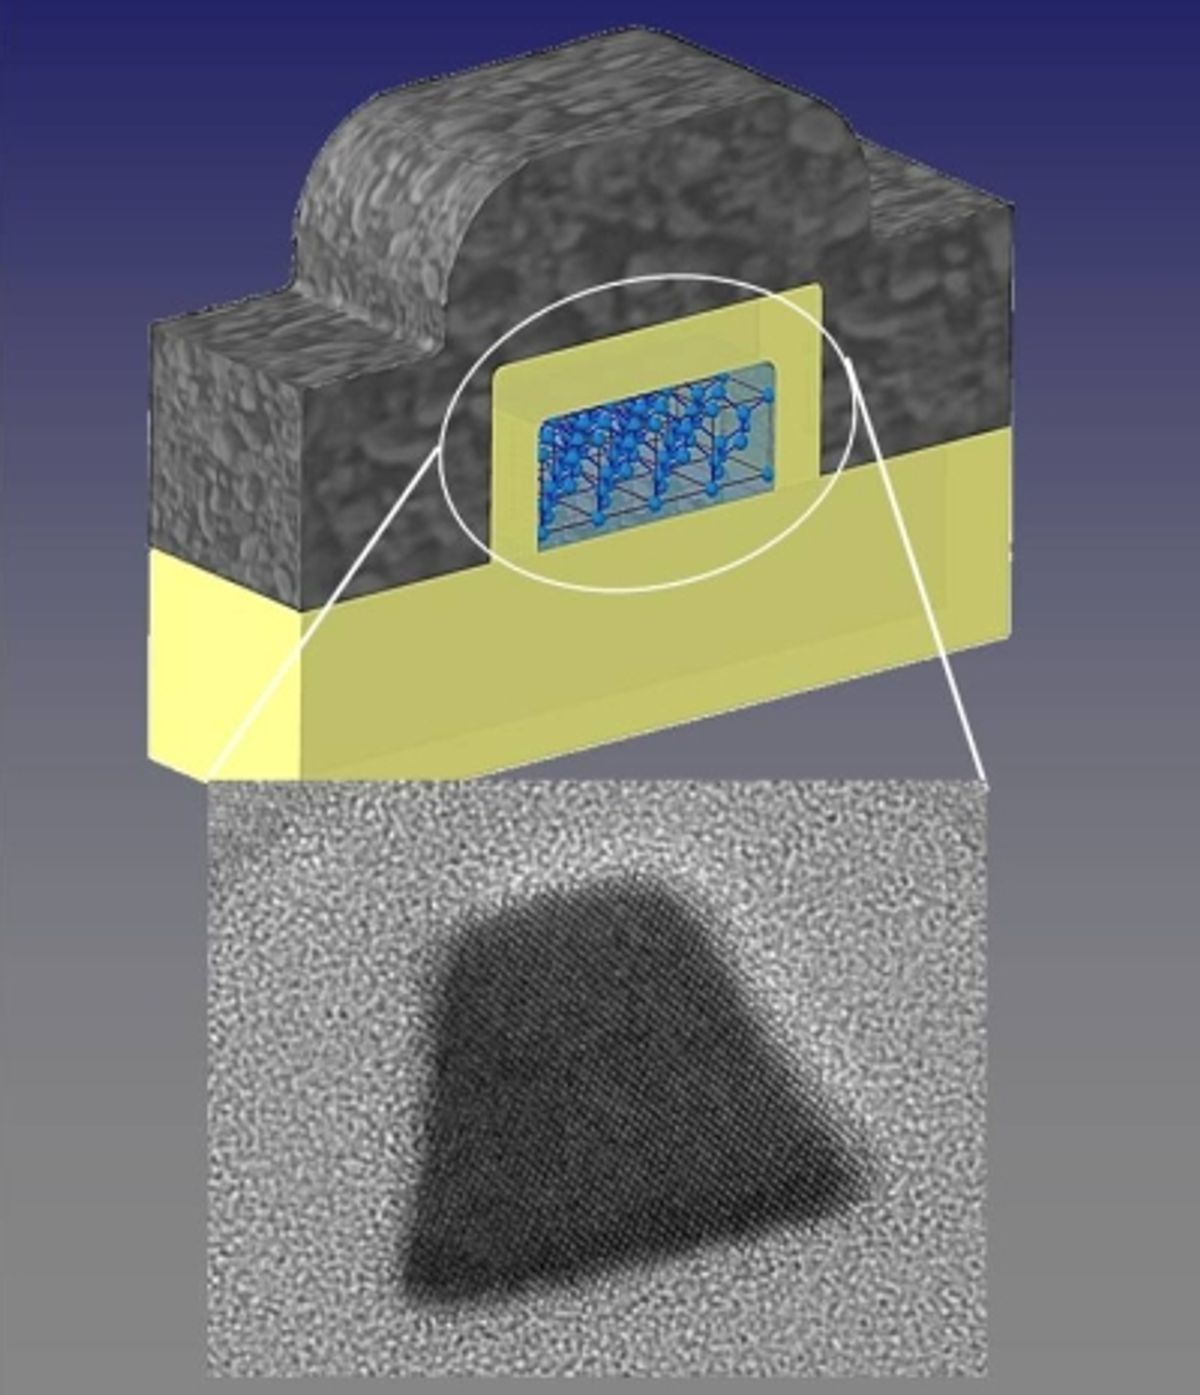 Junctionless Transistor Fabricated from Nanowires